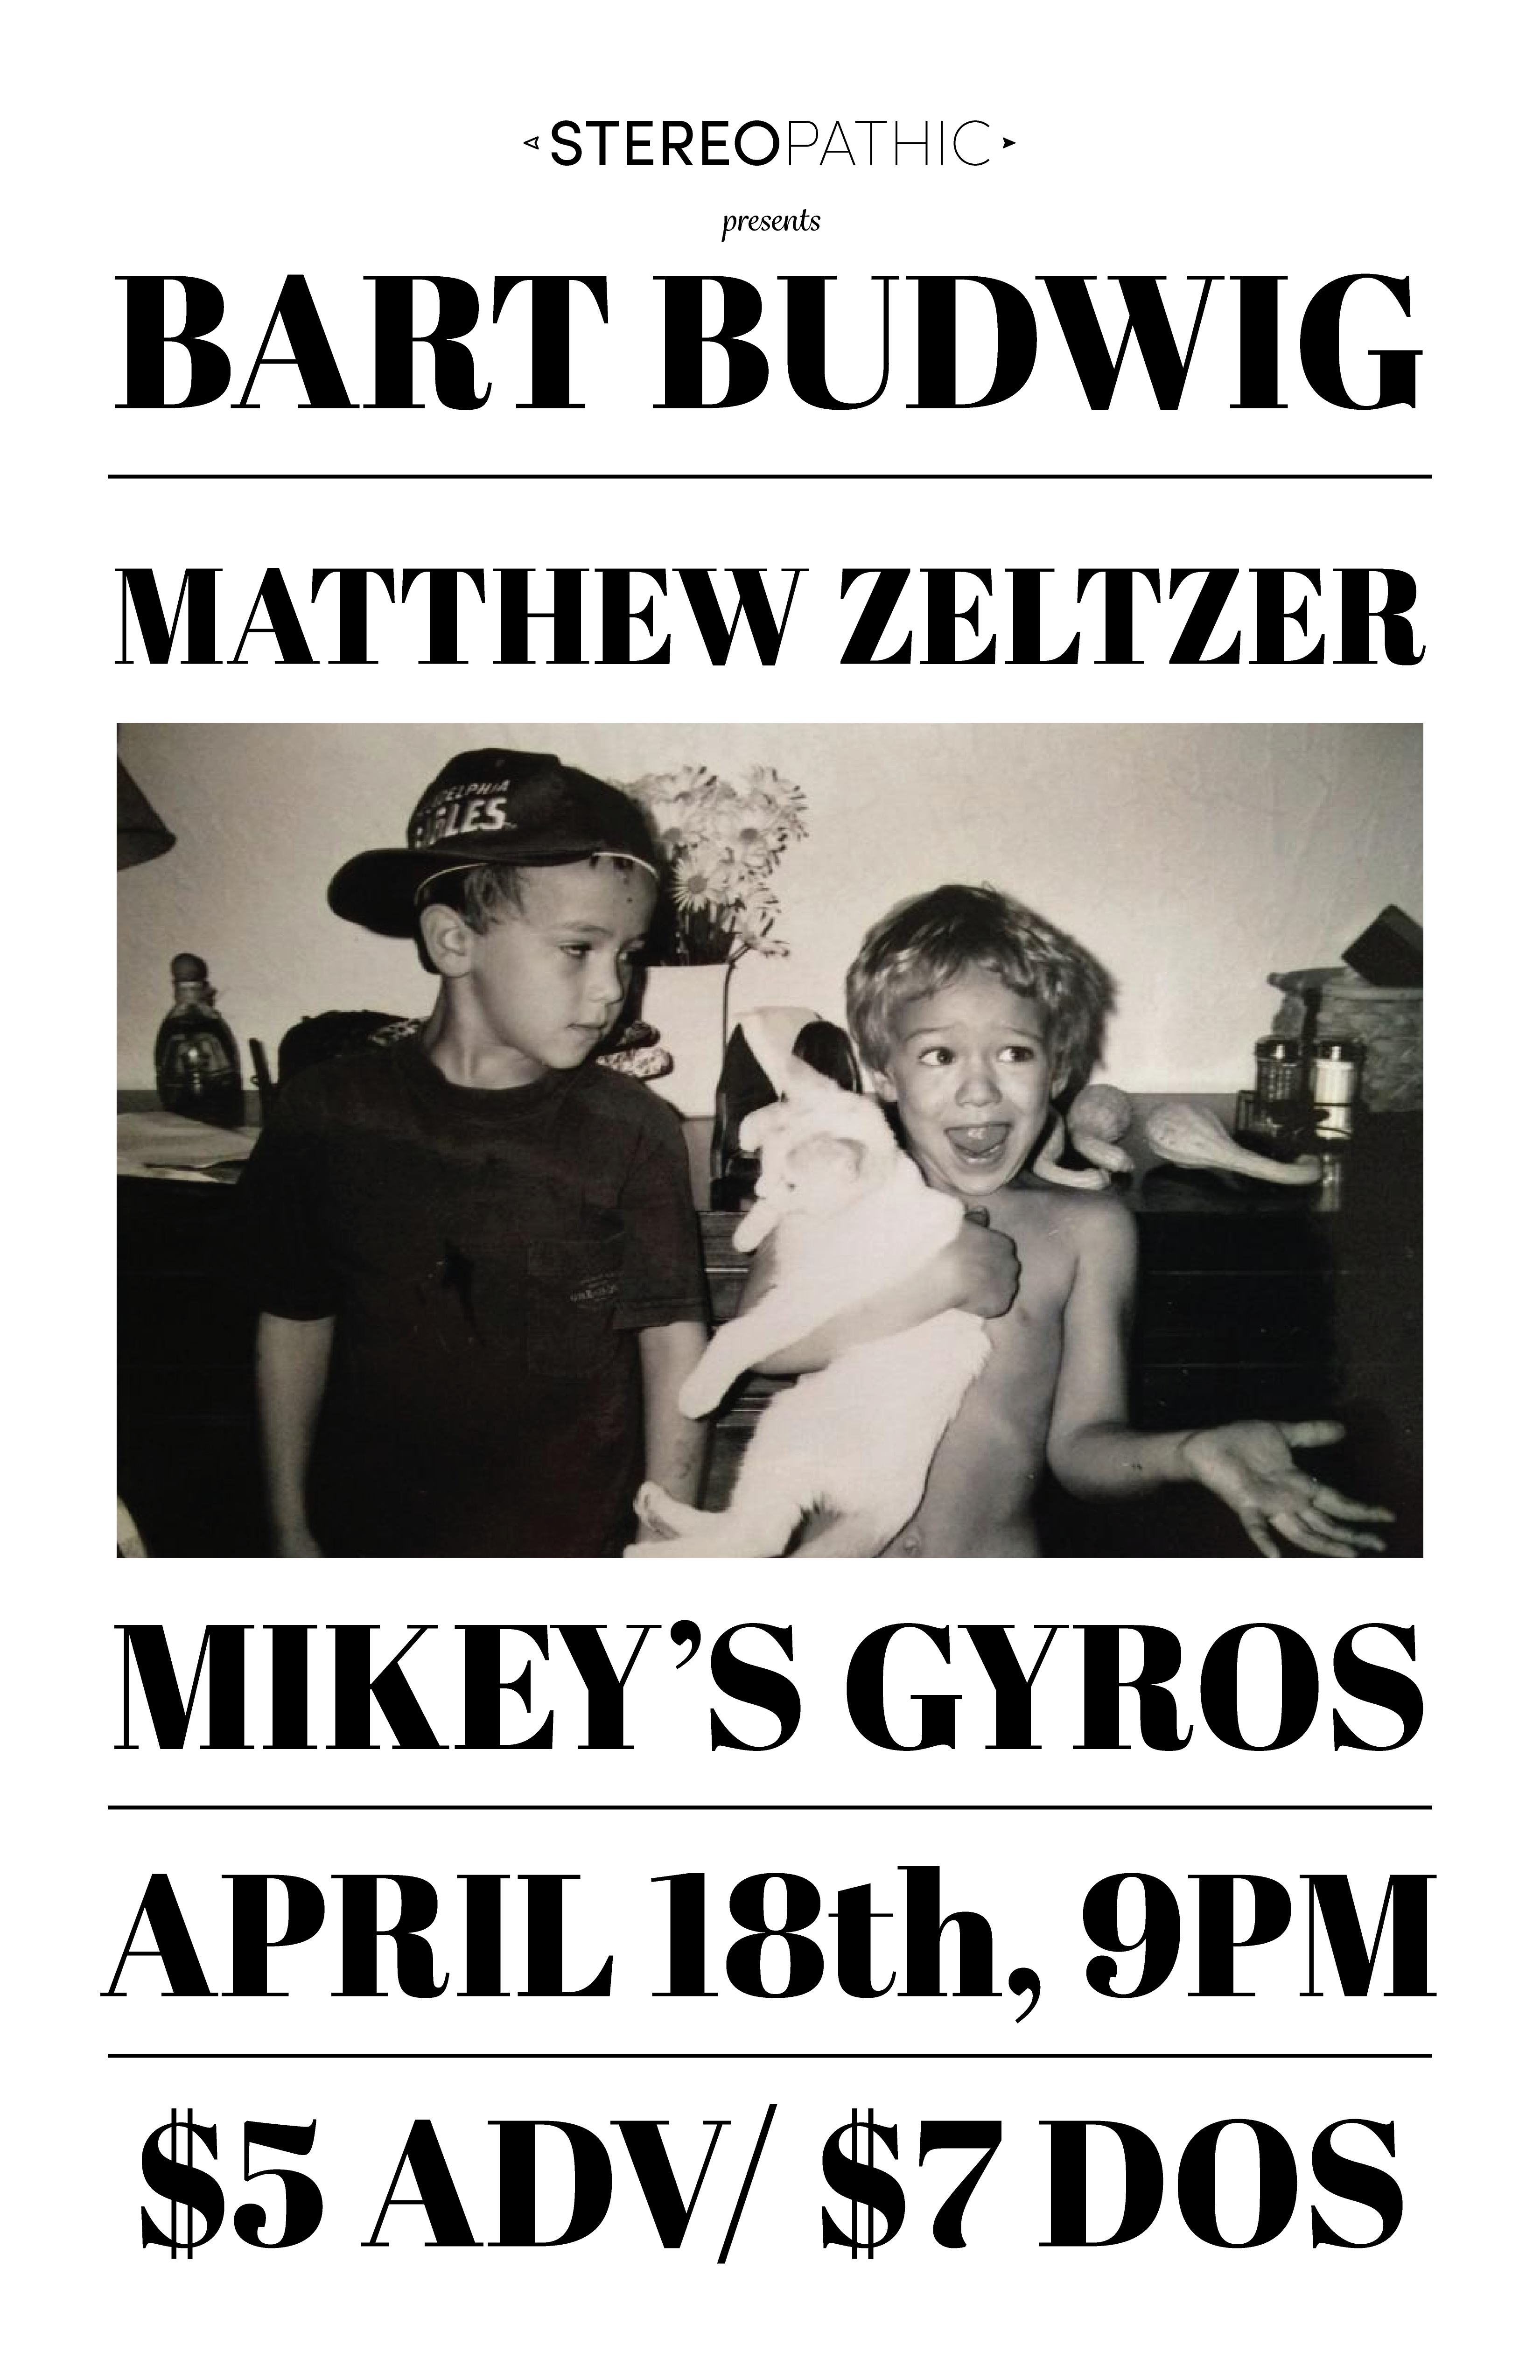 Bart Budwig & Matthew Zeltzer at Mikey's Gyros in Moscow, ID - April 18th - Tickets are $5 in advance, $7 day of show